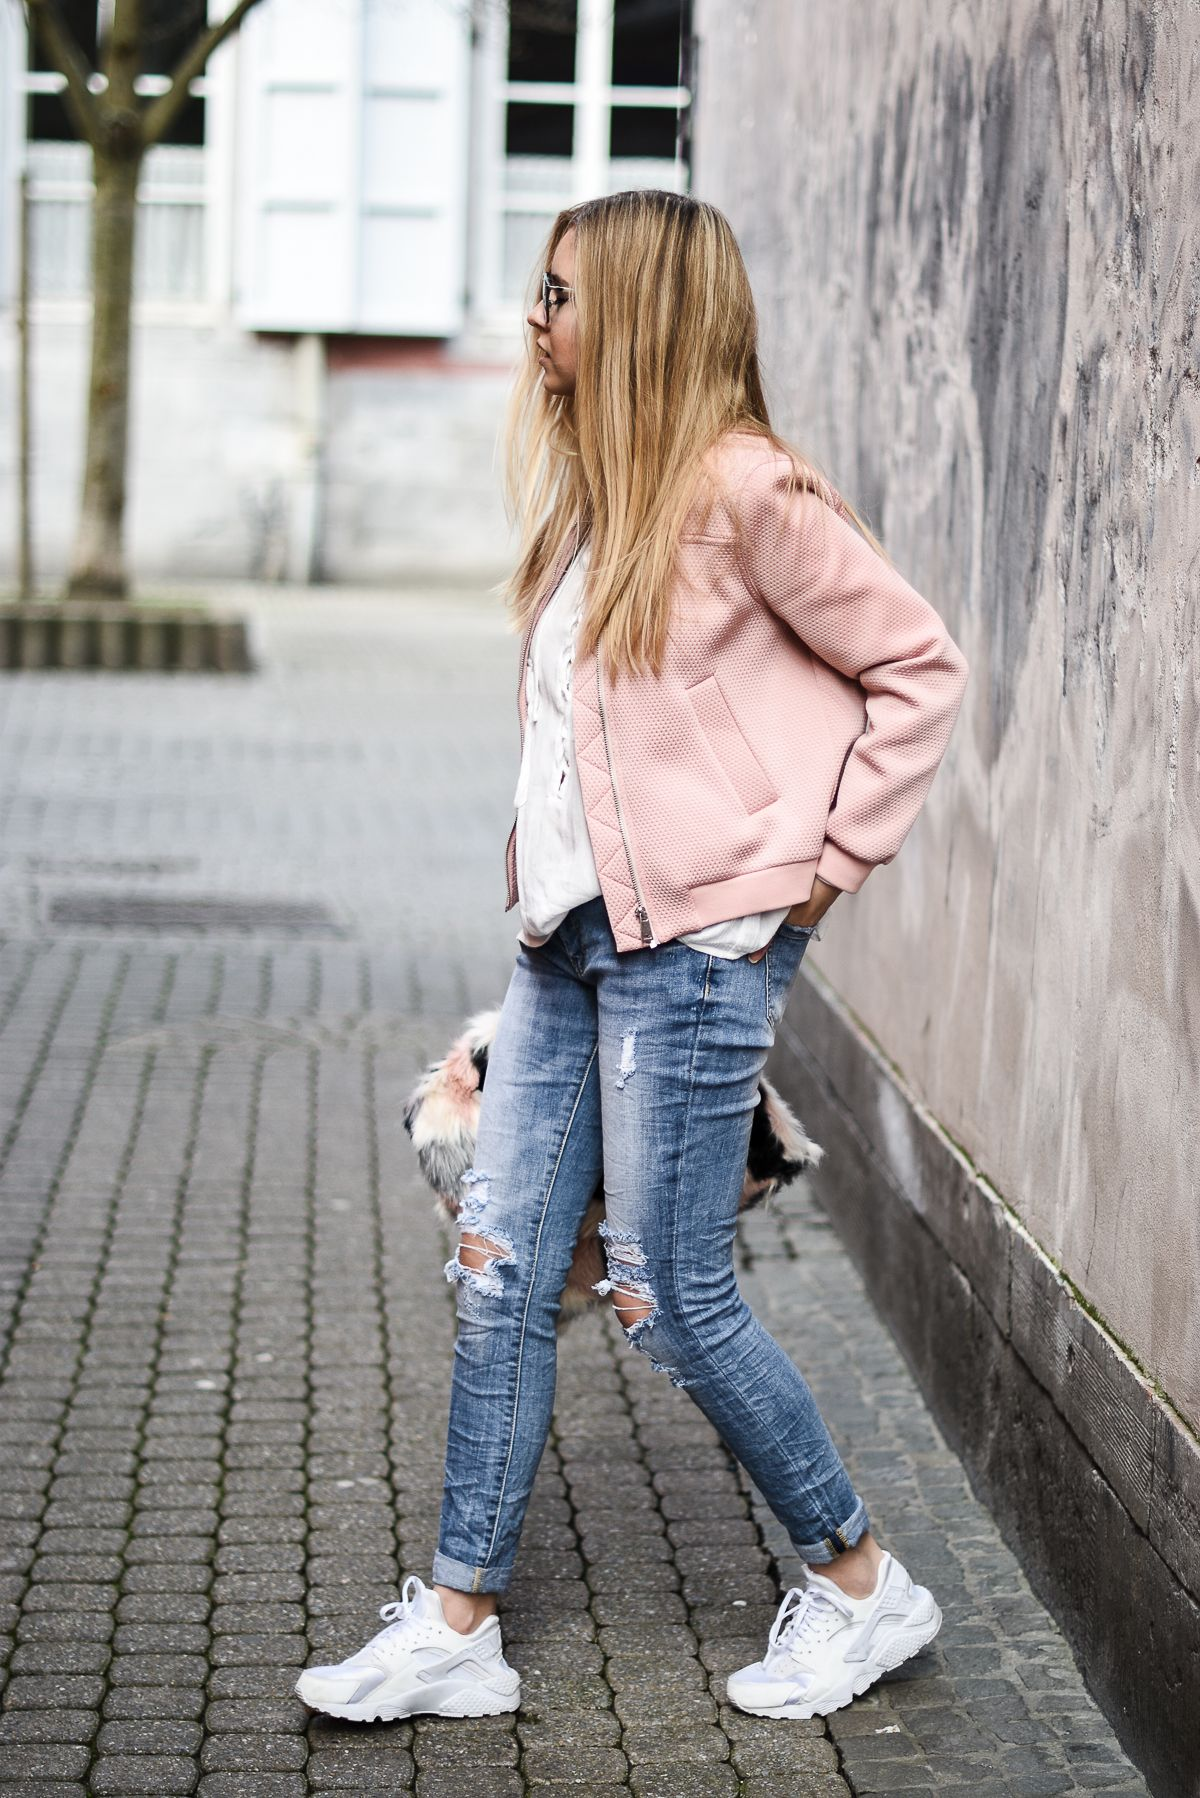 f96d93cce64f6 PINK BOMBER    BOYFRIEND JEANS    NIKE HUARACHE    DIOR SO REAL